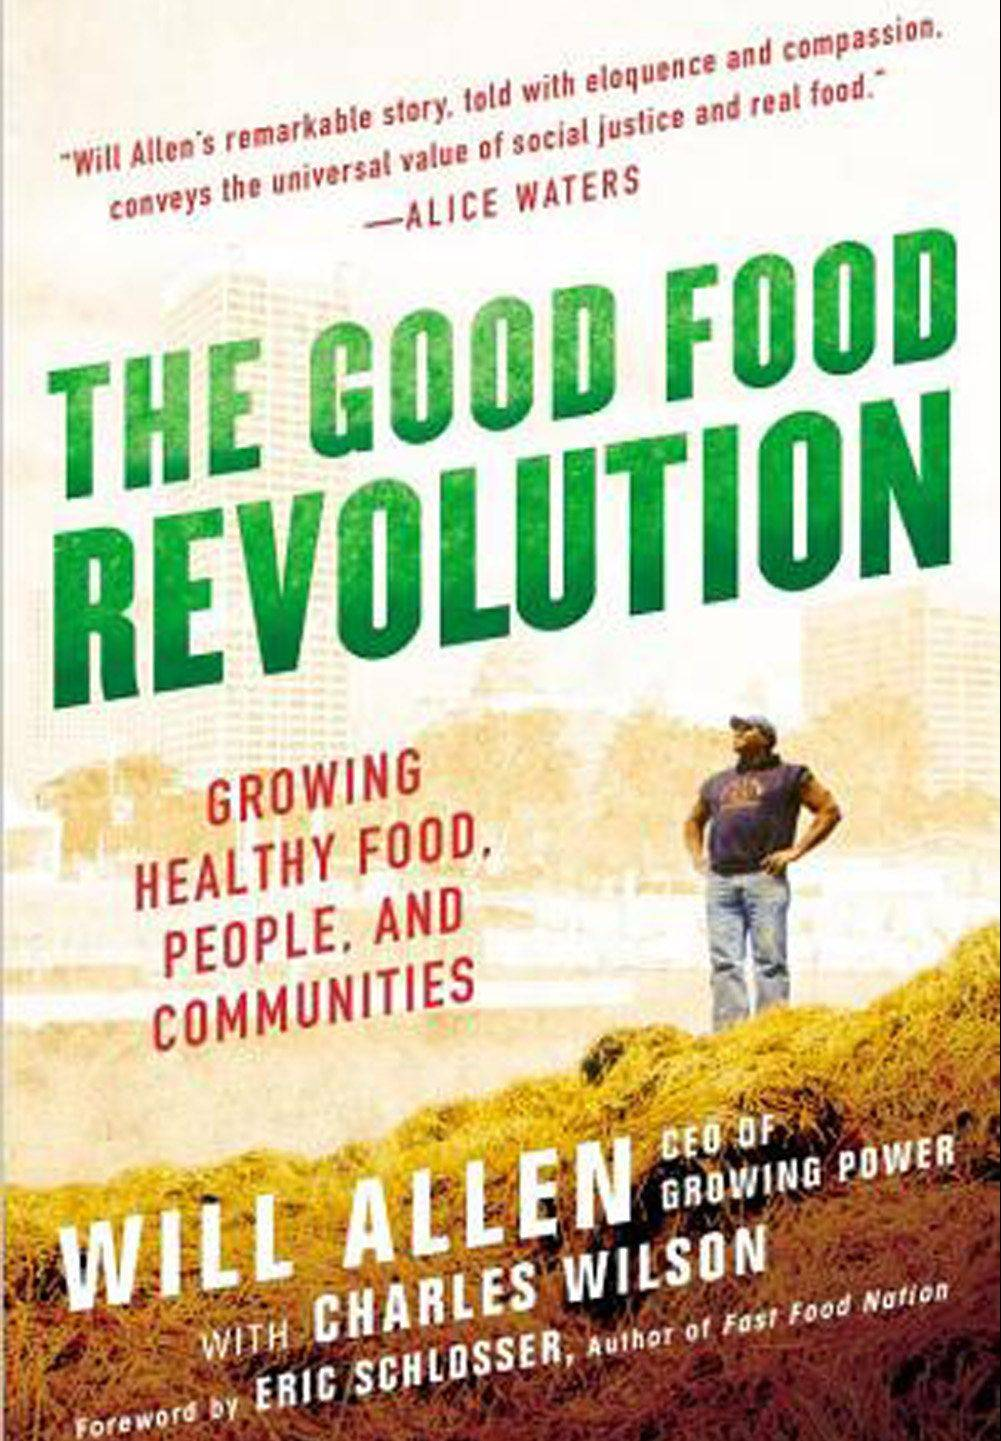 """The Good Food Revolution: Growing Healthy Food, People, and Communities,"" a book by Will Allen is the ""One Book, One Batavia"" choice."